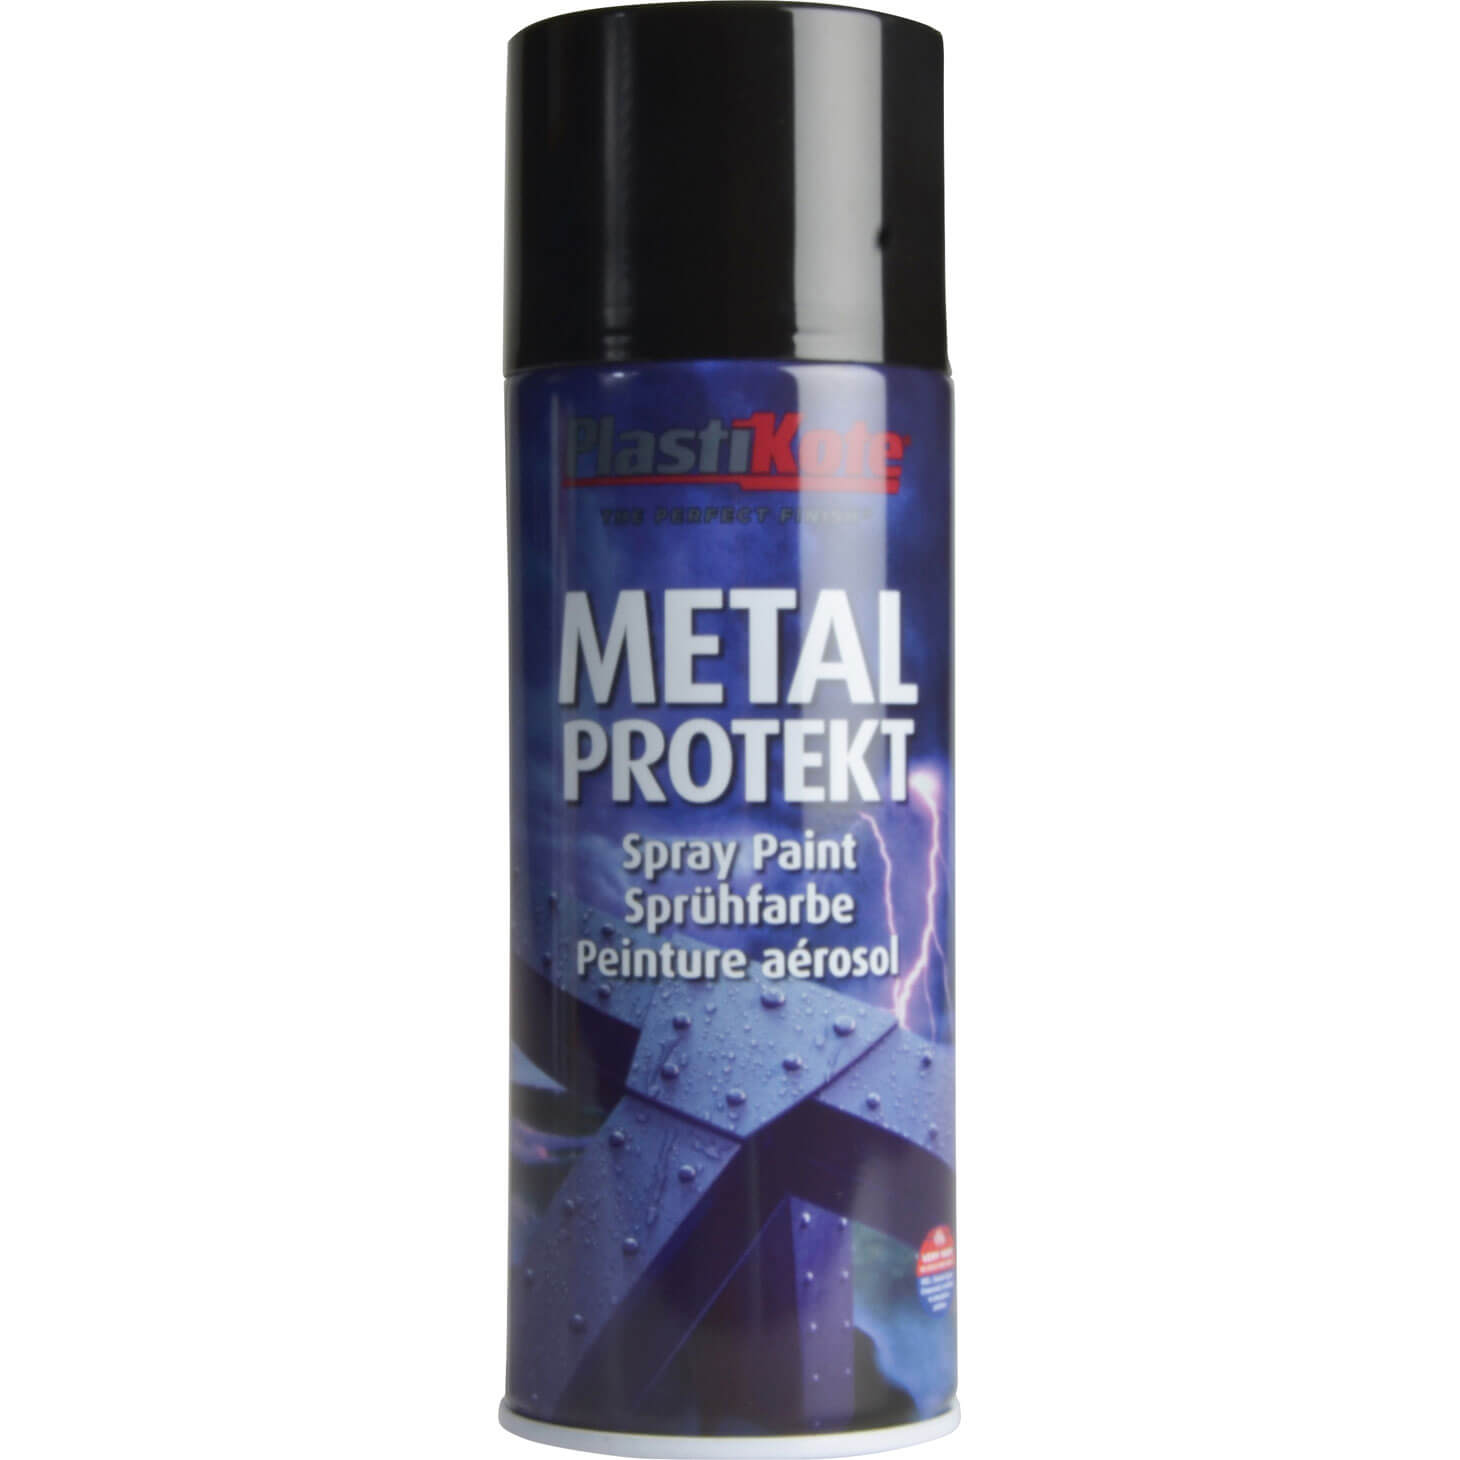 Plastikote metal protekt aerosol spray paint gloss black 400ml Black metal spray paint